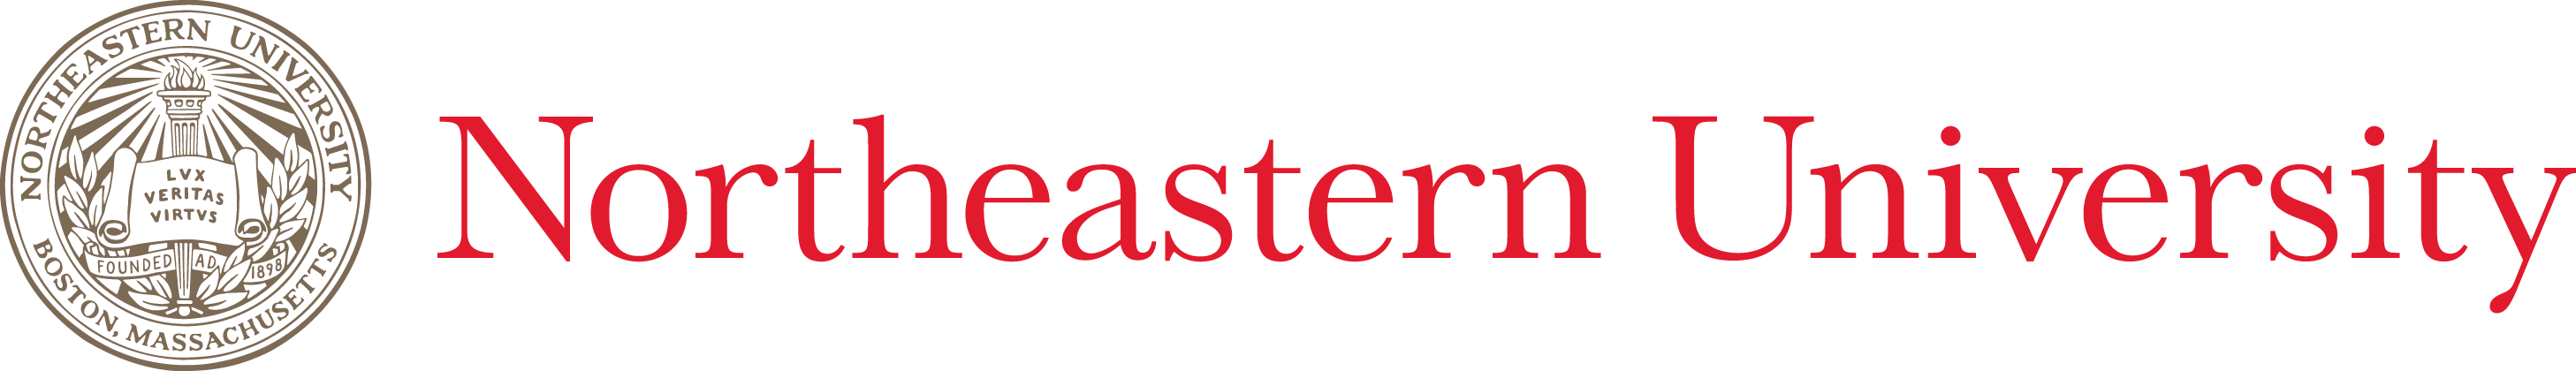 Northeastern University_Cybersecurity Masters Degree Programs